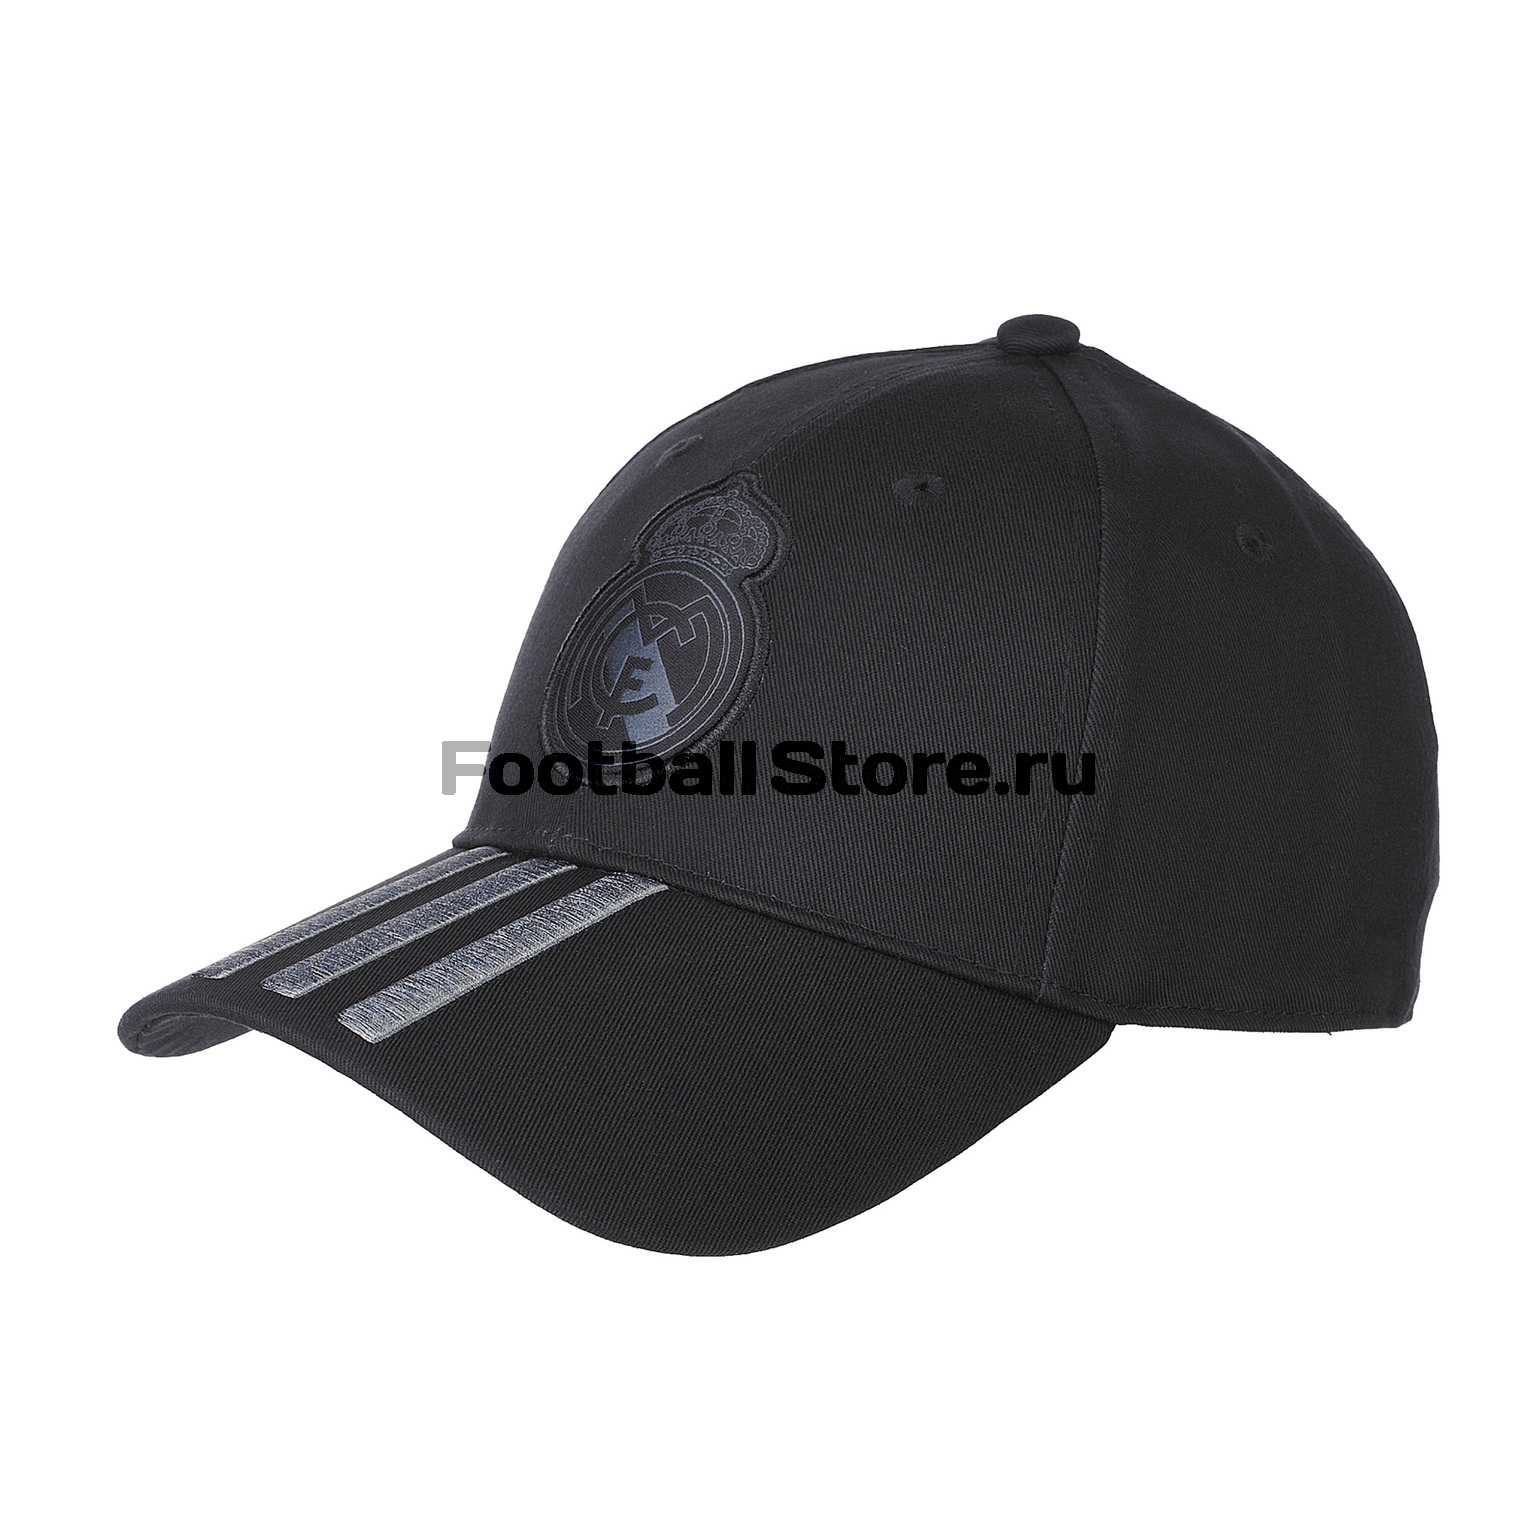 Бейсболка Adidas Real Madrid C40 Cap DQ1496 все цены